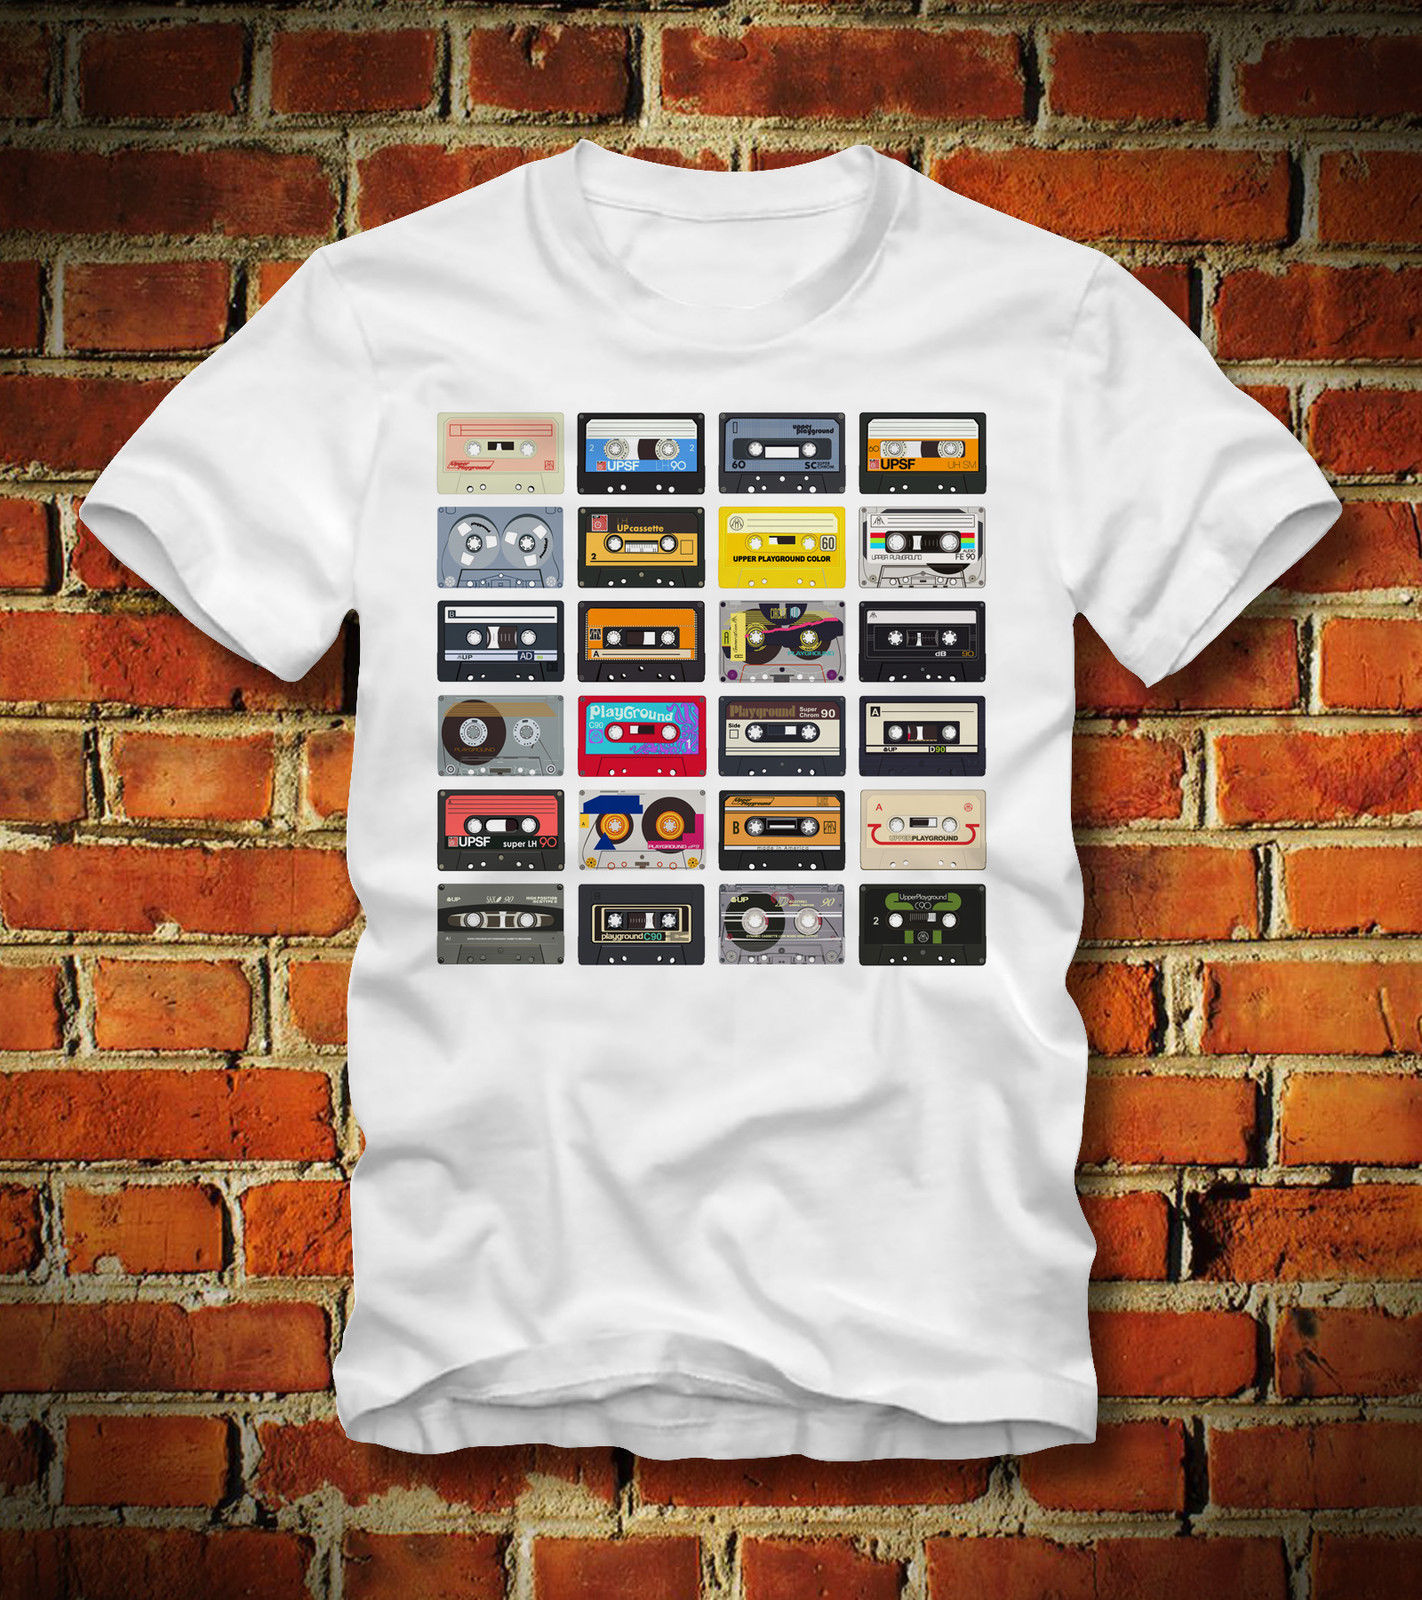 2019 Summer New Brand T Shirt Men Hip Hop Men Casual T SHIRT 80er 80s RETRO CASSETTE TAPES KASSETTE VINTAGE OLDSCHOOLTee Shirt